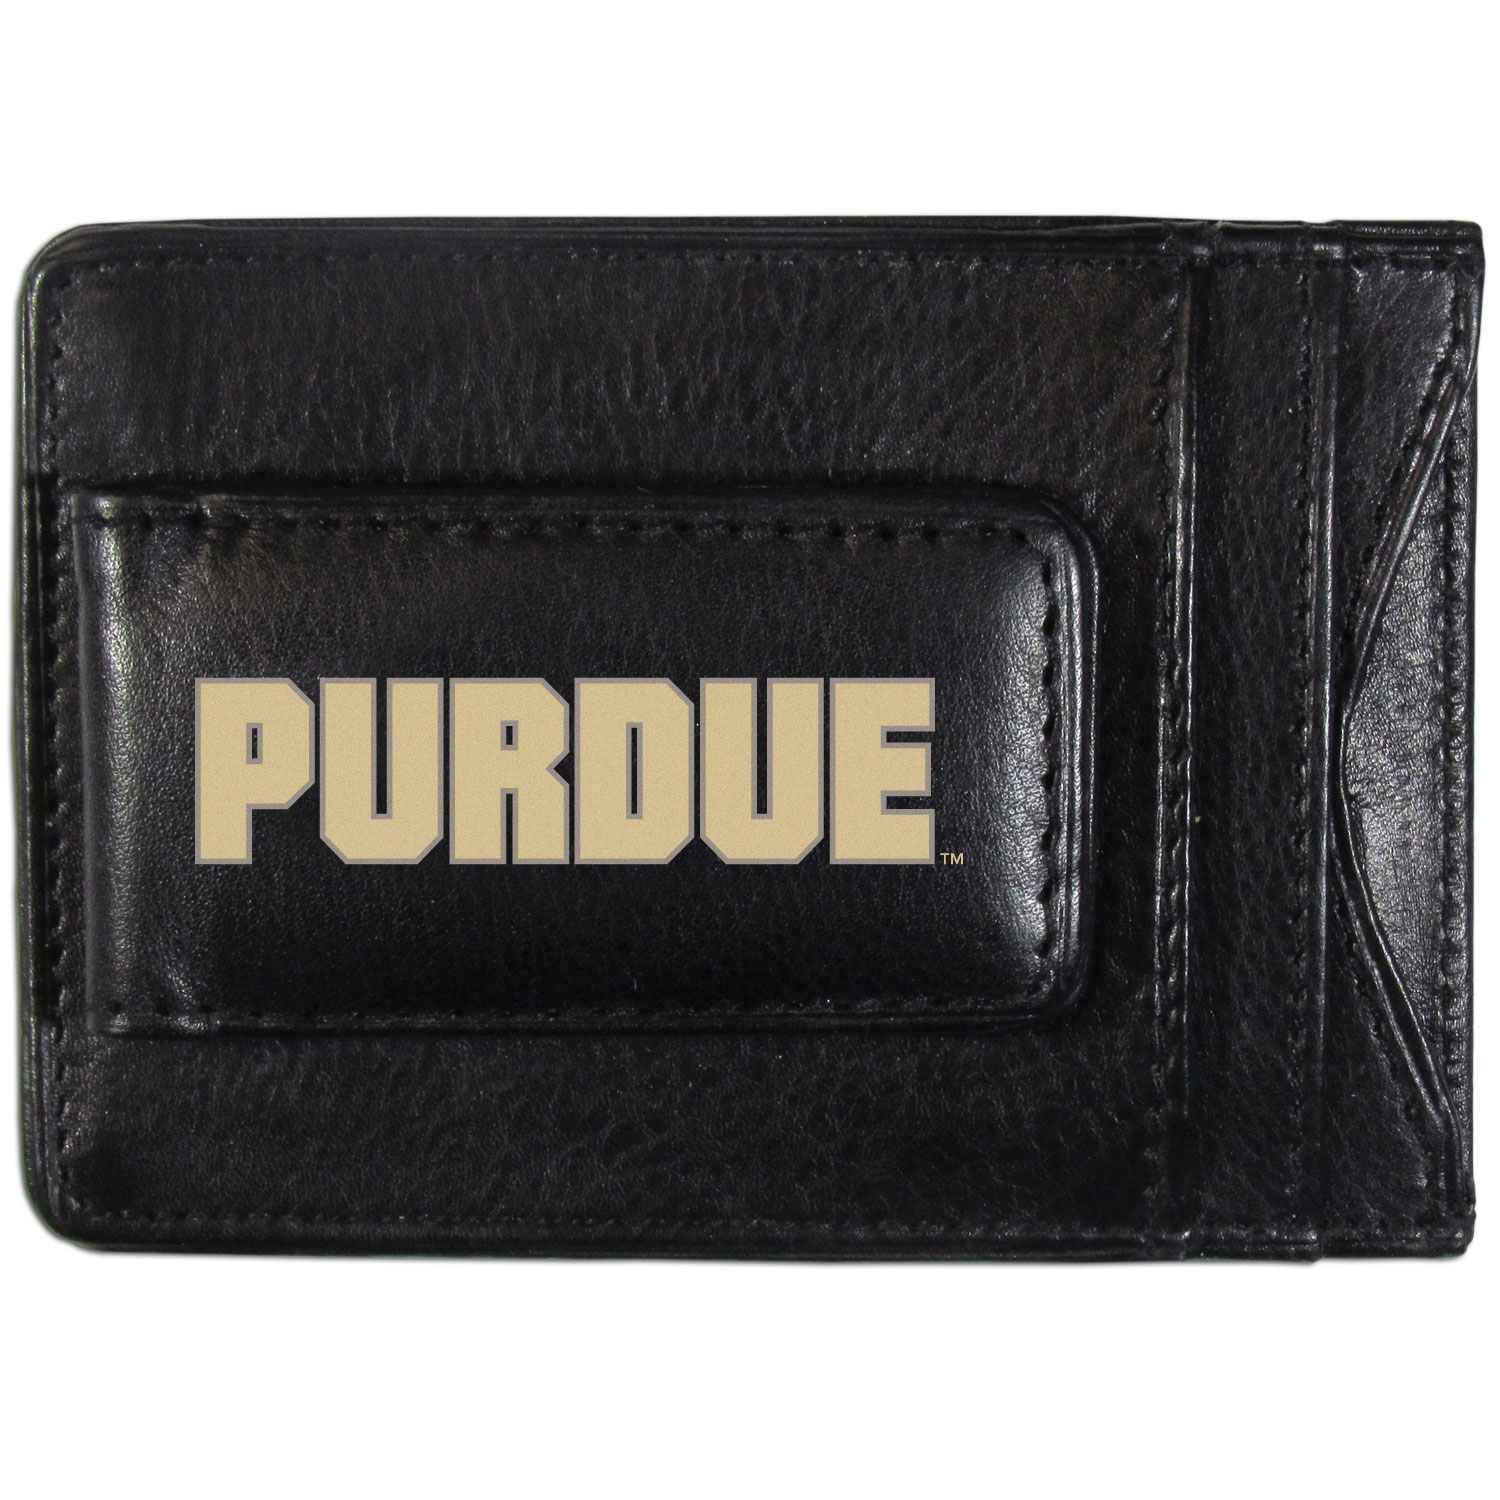 Purdue Boilermakers Logo Leather Cash and Cardholder - This super slim leather wallet lets you have all the benefits of a money clip while keeping the organization of a wallet. On one side of this front pocket wallet there is a strong, magnetic money clip to keep your cash easily accessible and the?Purdue Boilermakers team logo on the front. The versatile men's accessory is a perfect addition to your fan apparel.